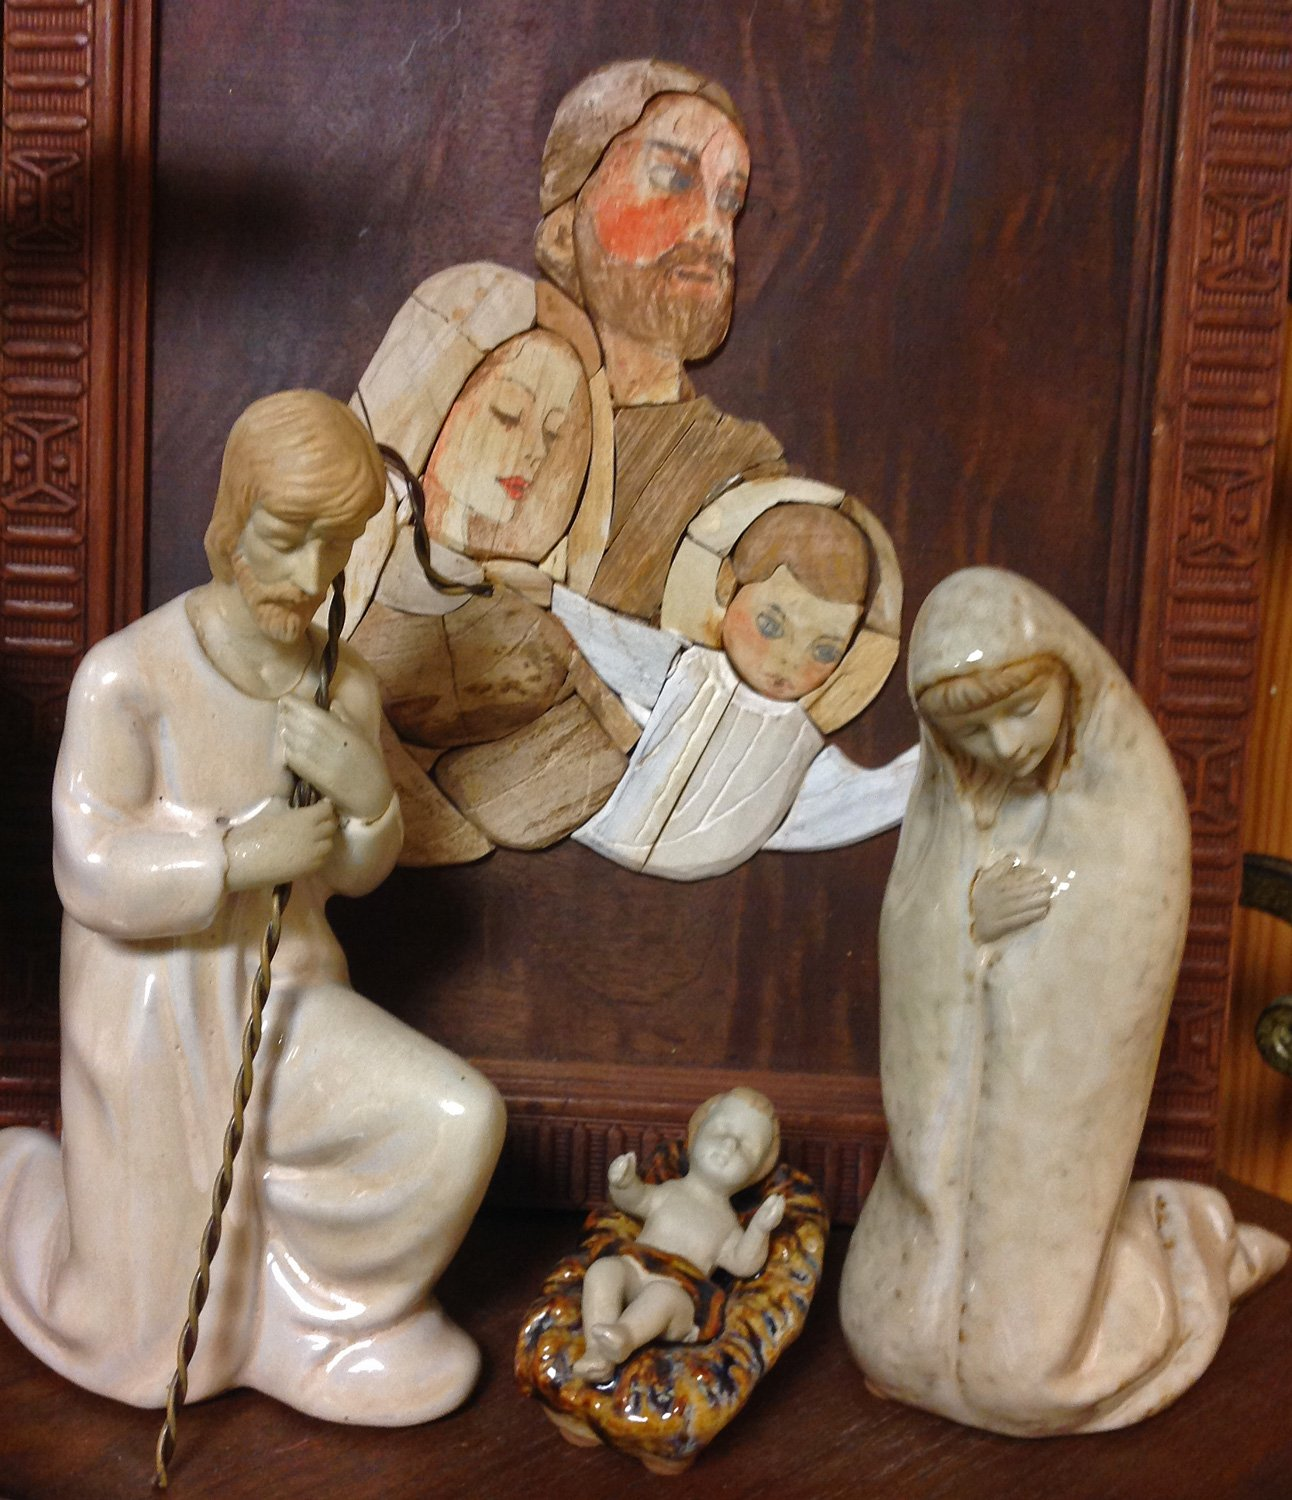 Joseph is more than the quiet man beside the manger.